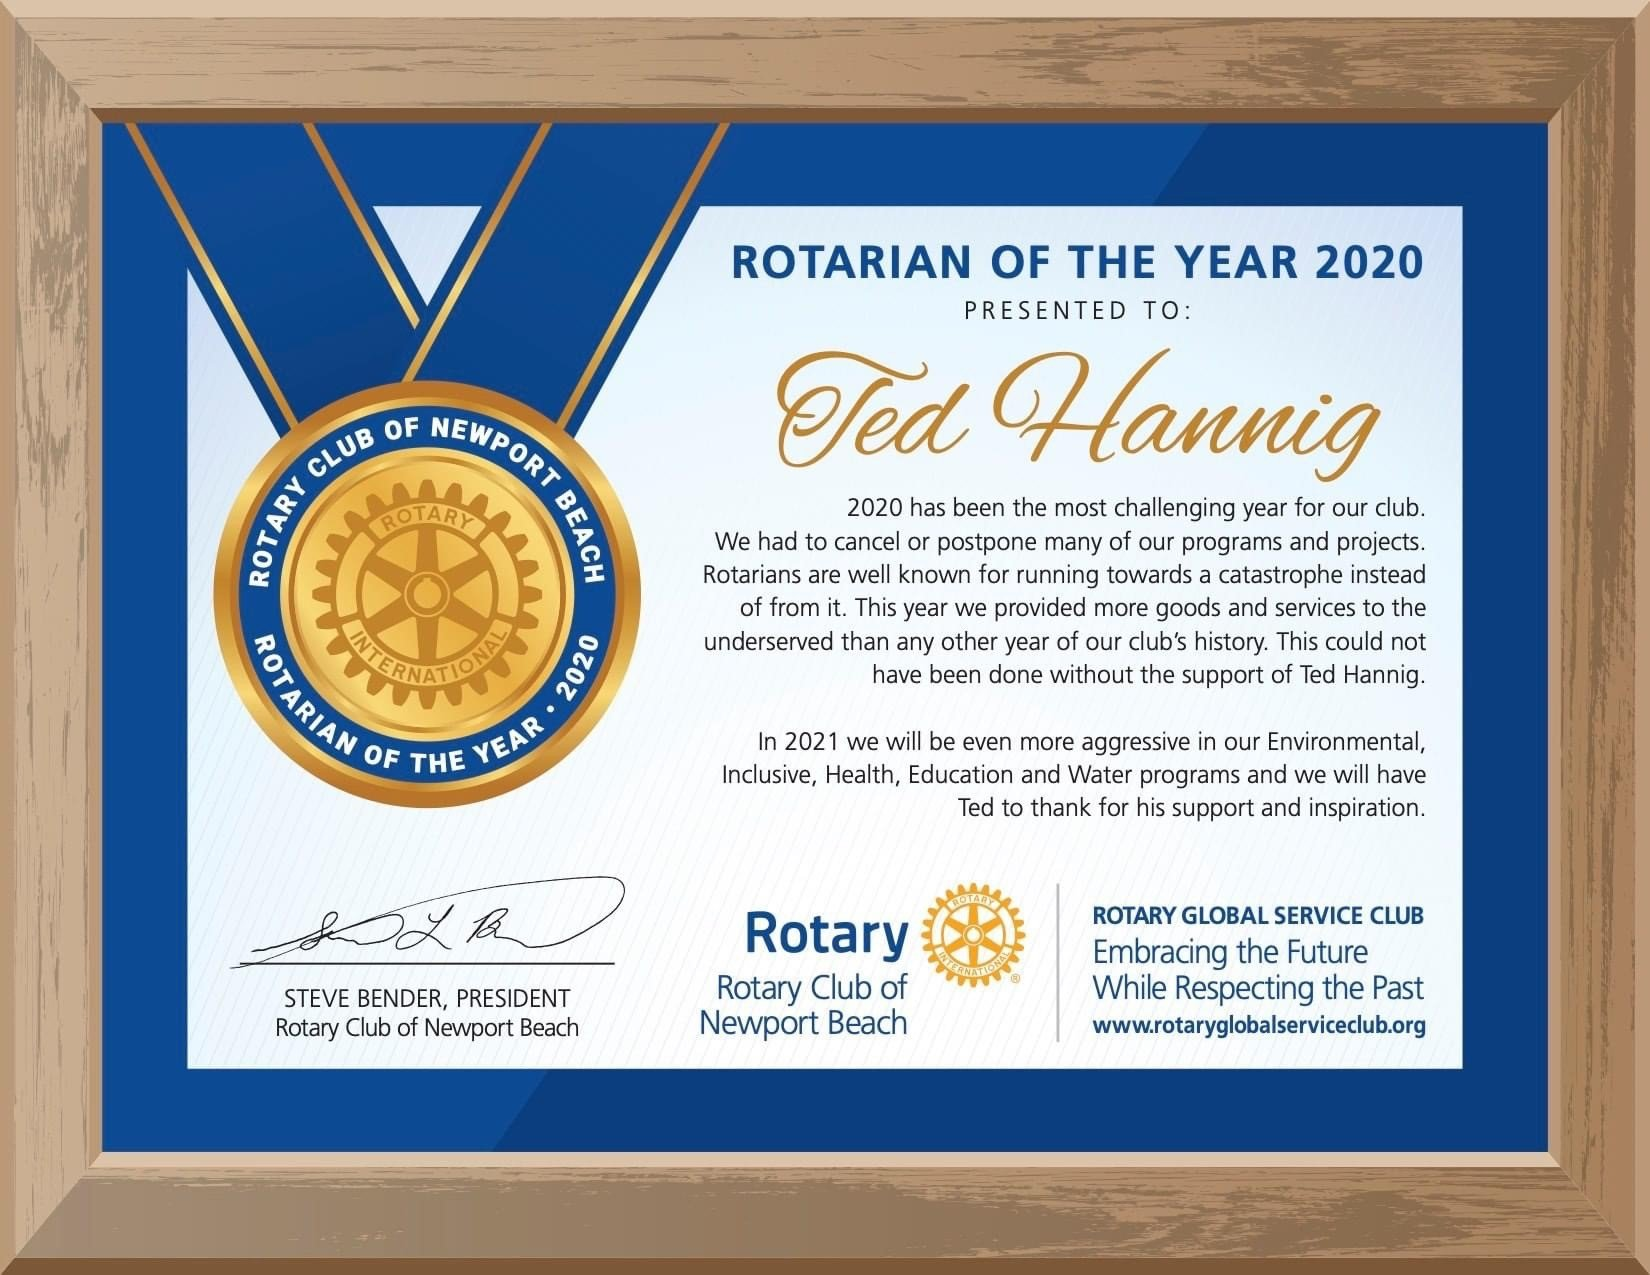 Rotarian of the Year 2020